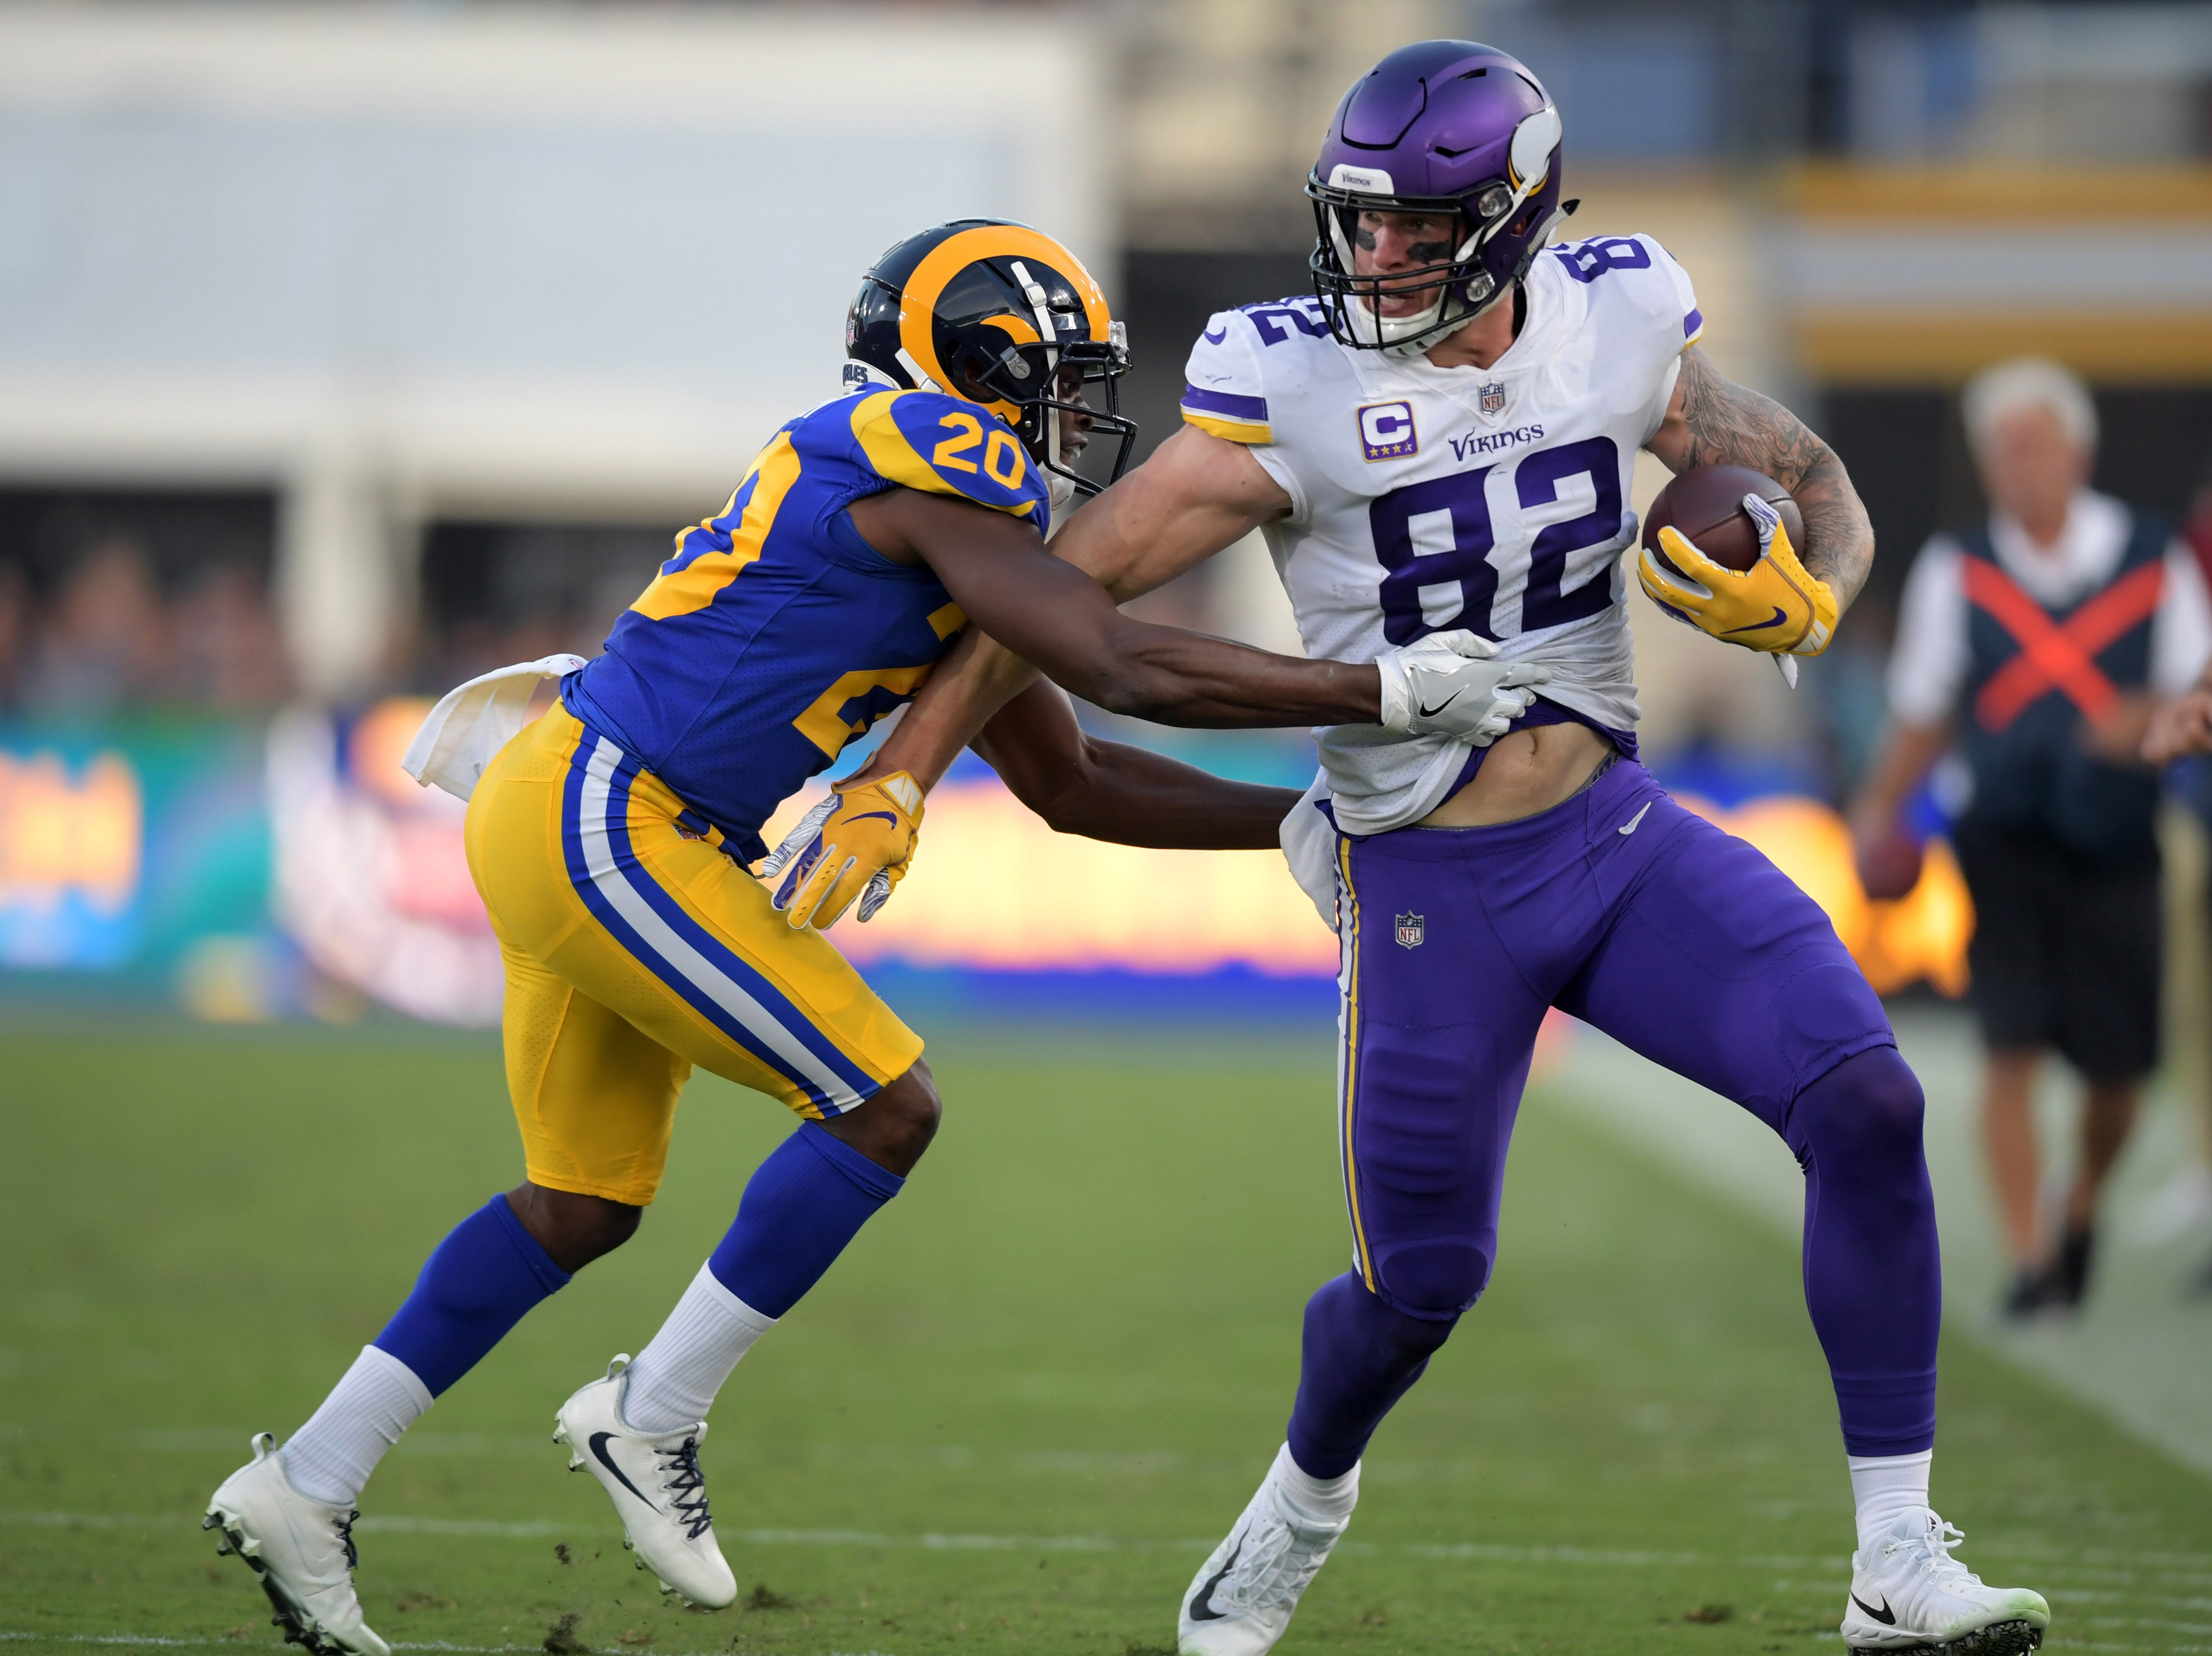 Sep 27, 2018; Los Angeles, CA, USA; Minnesota Vikings tight end Kyle Rudolph (82) runs with the ball as Los Angeles Rams defensive back Lamarcus Joyner (20) defends in the first quarter at Los Angeles Memorial Coliseum. Mandatory Credit: Kirby Lee-USA TODAY Sports